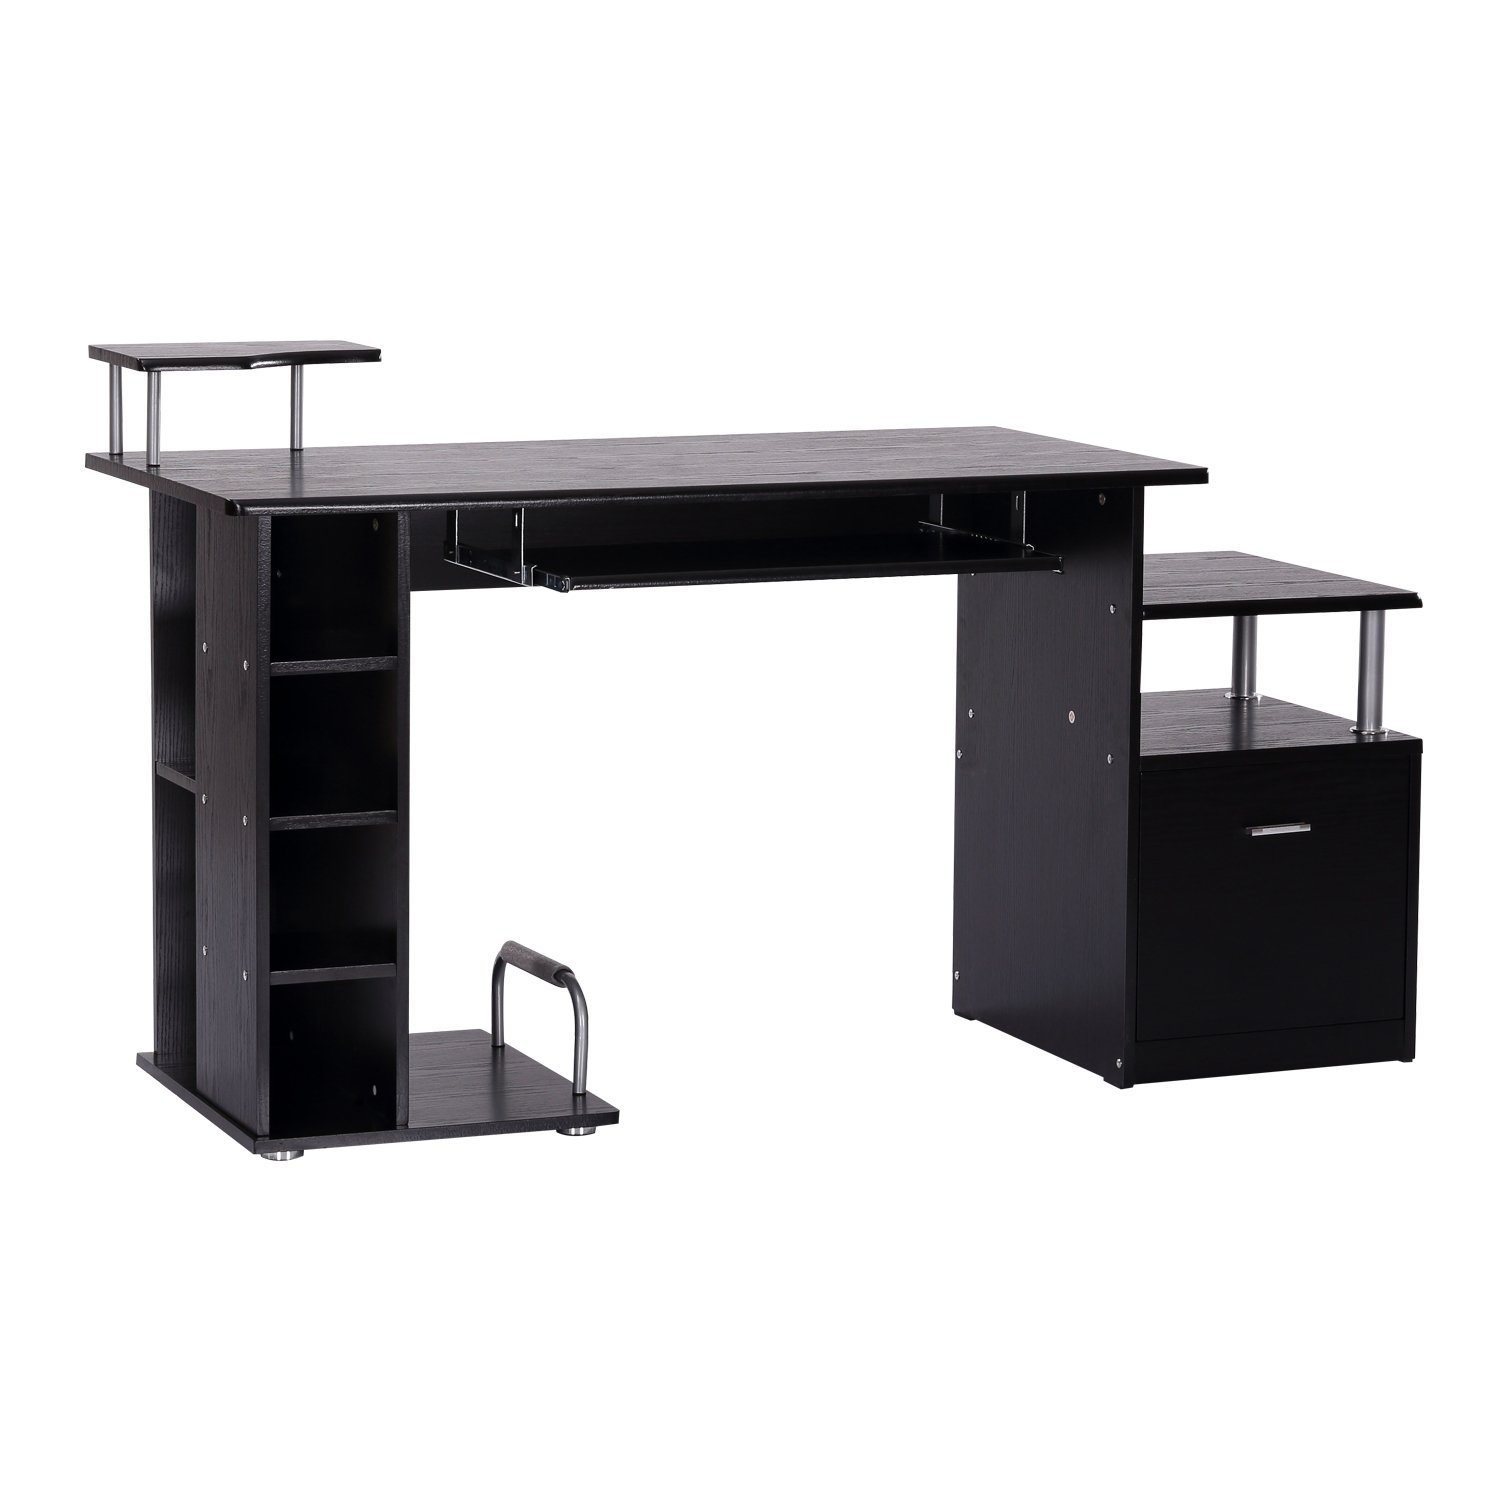 HOMCOM Desk Computer PC Port With Shelves Office 152x60x88cm Black Keyboard